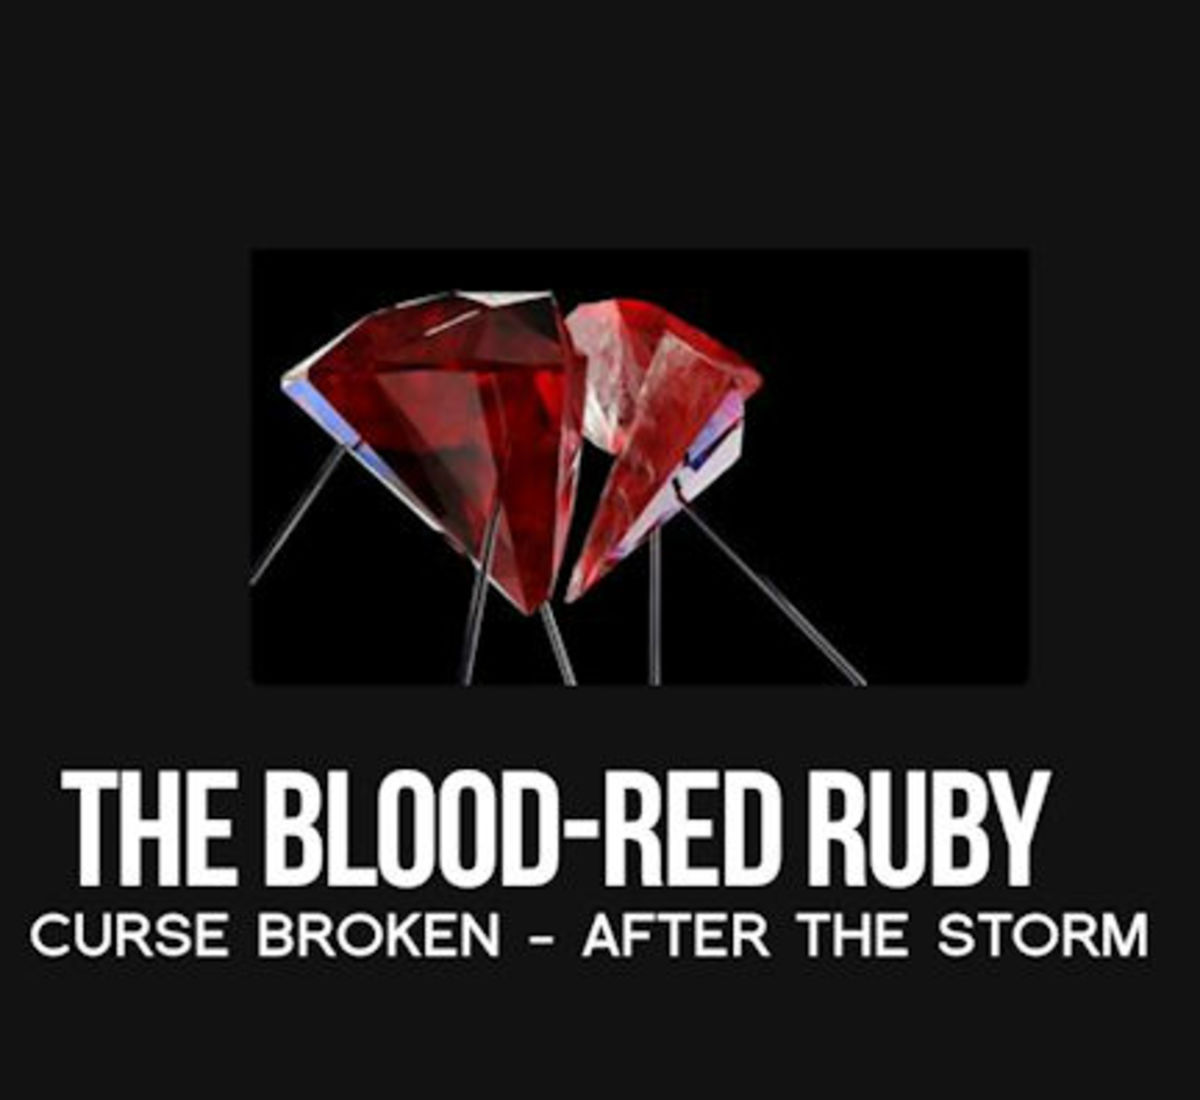 The Blood-Red Ruby: After the Storm 12